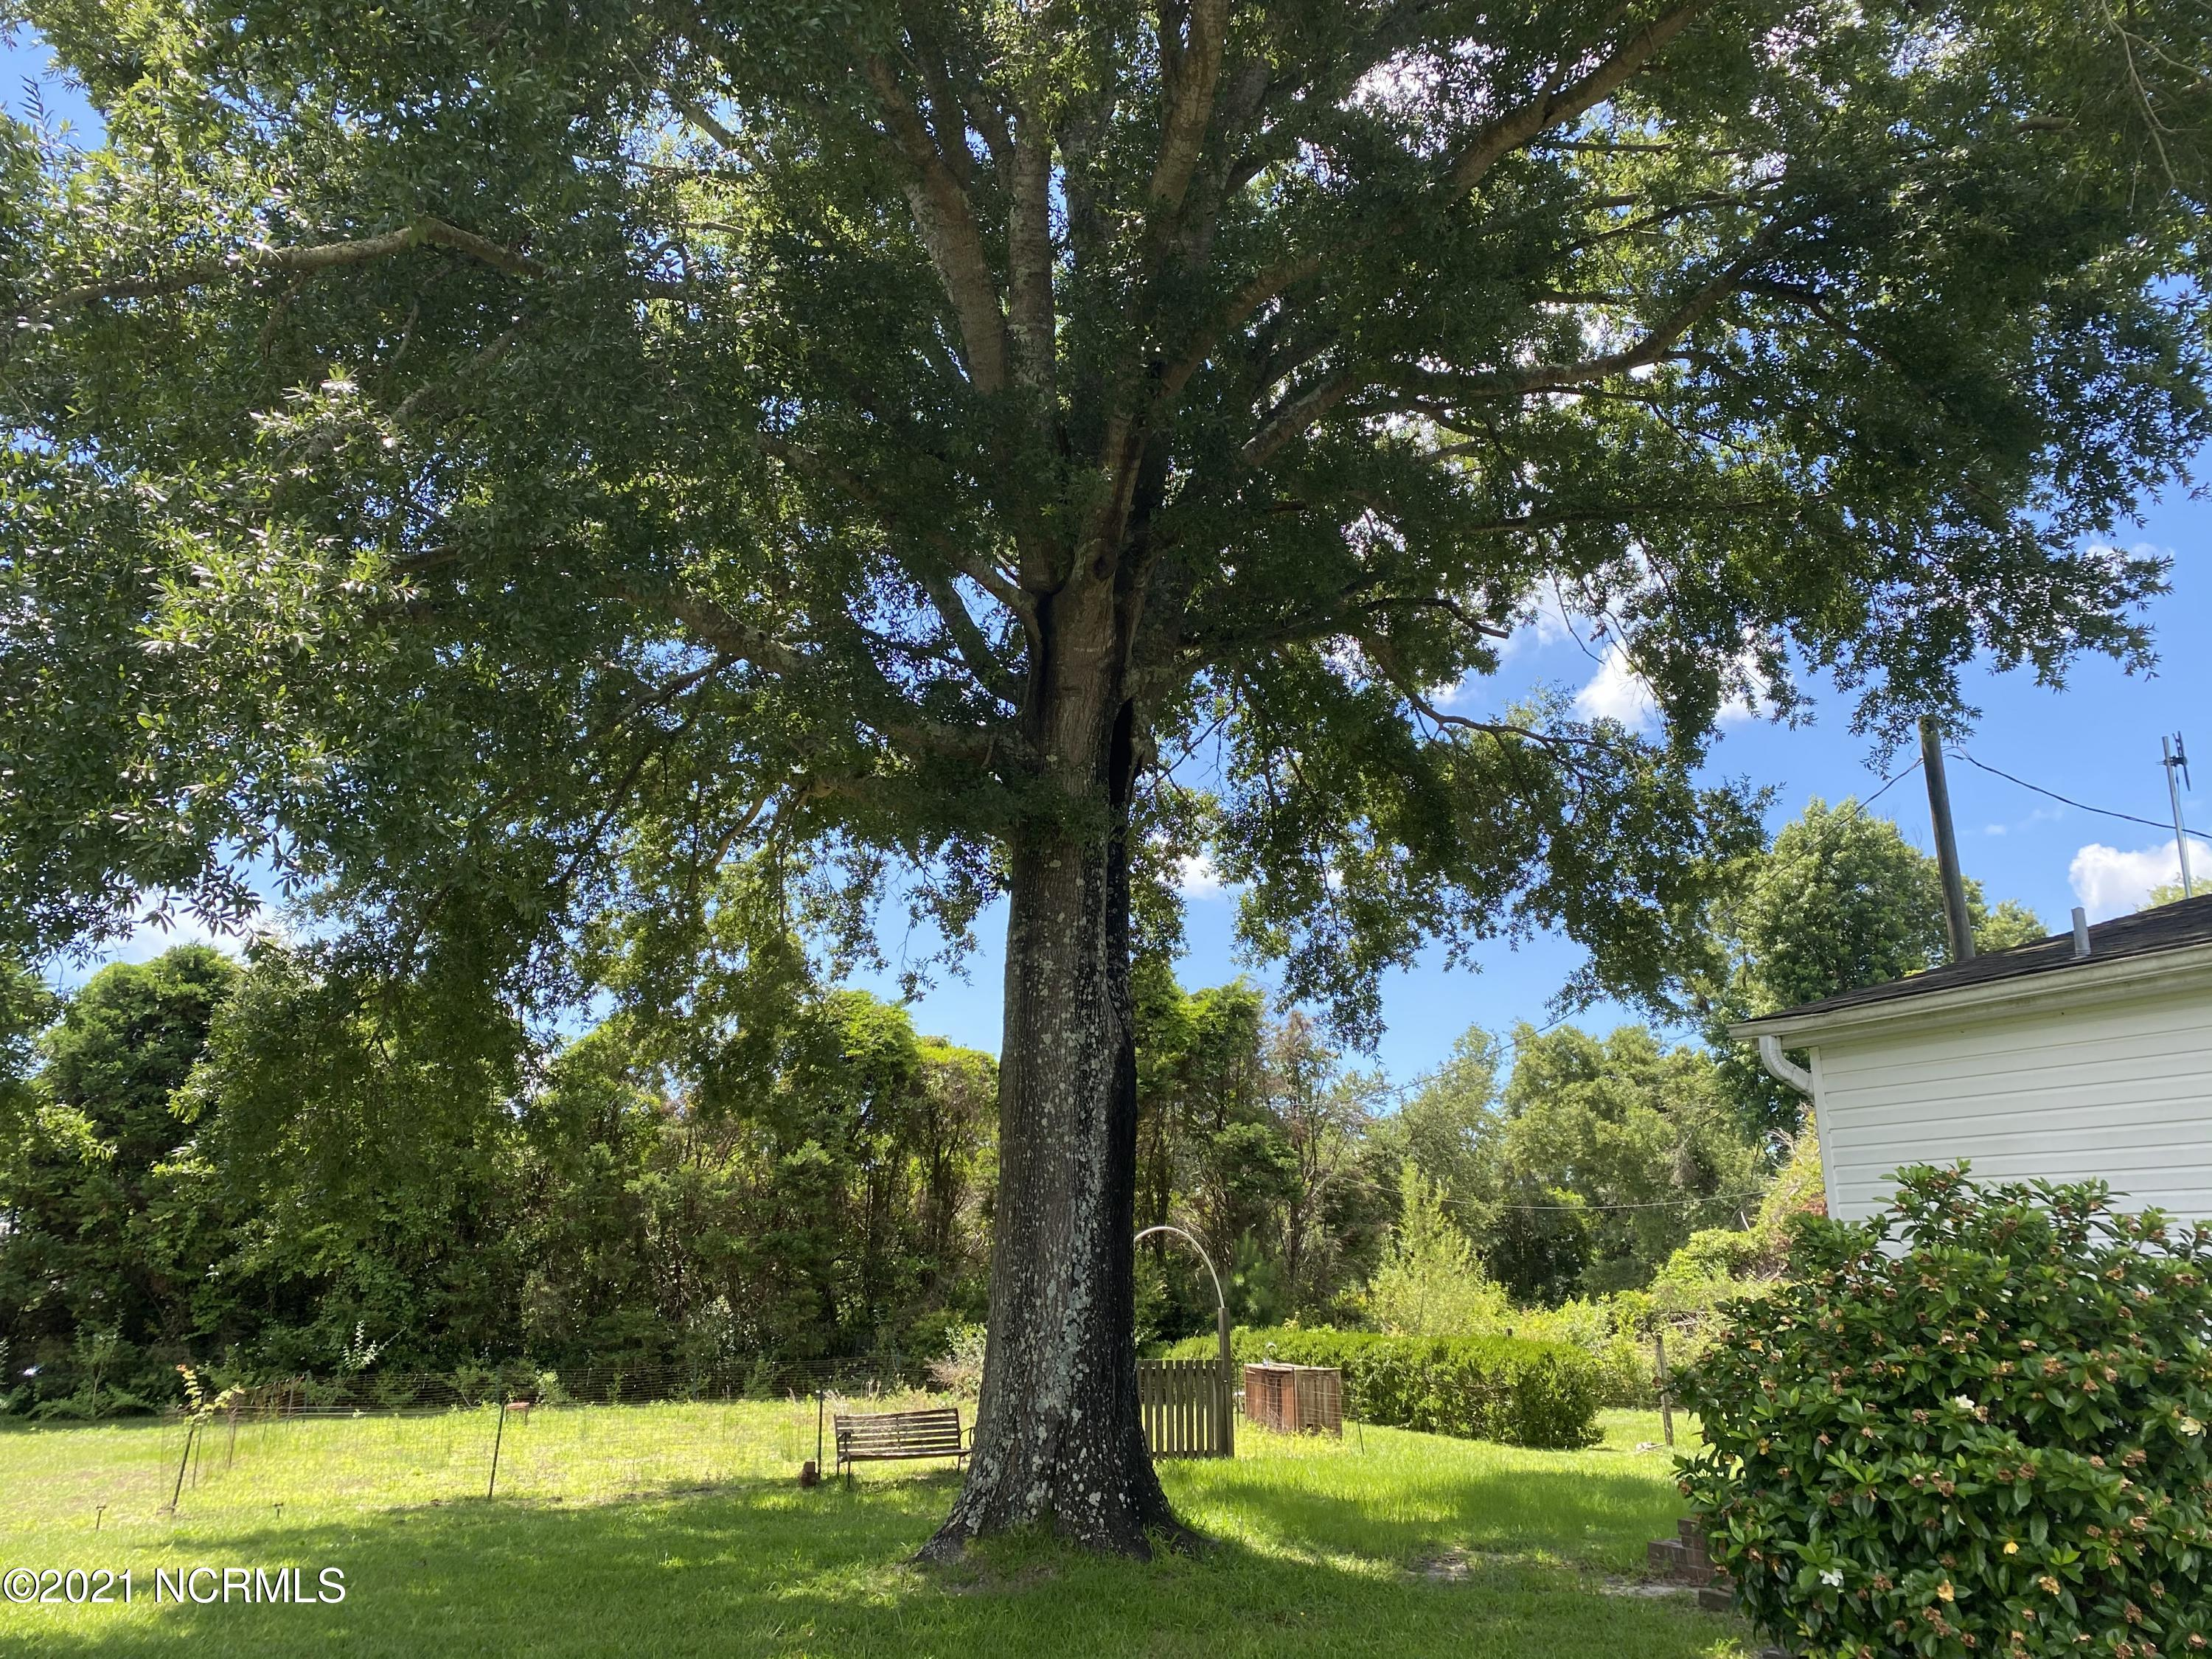 2645 Scotts Hill Loop Road, Wilmington, North Carolina 28411, 3 Bedrooms Bedrooms, 7 Rooms Rooms,2 BathroomsBathrooms,Single family residence,For sale,Scotts Hill Loop,100279209